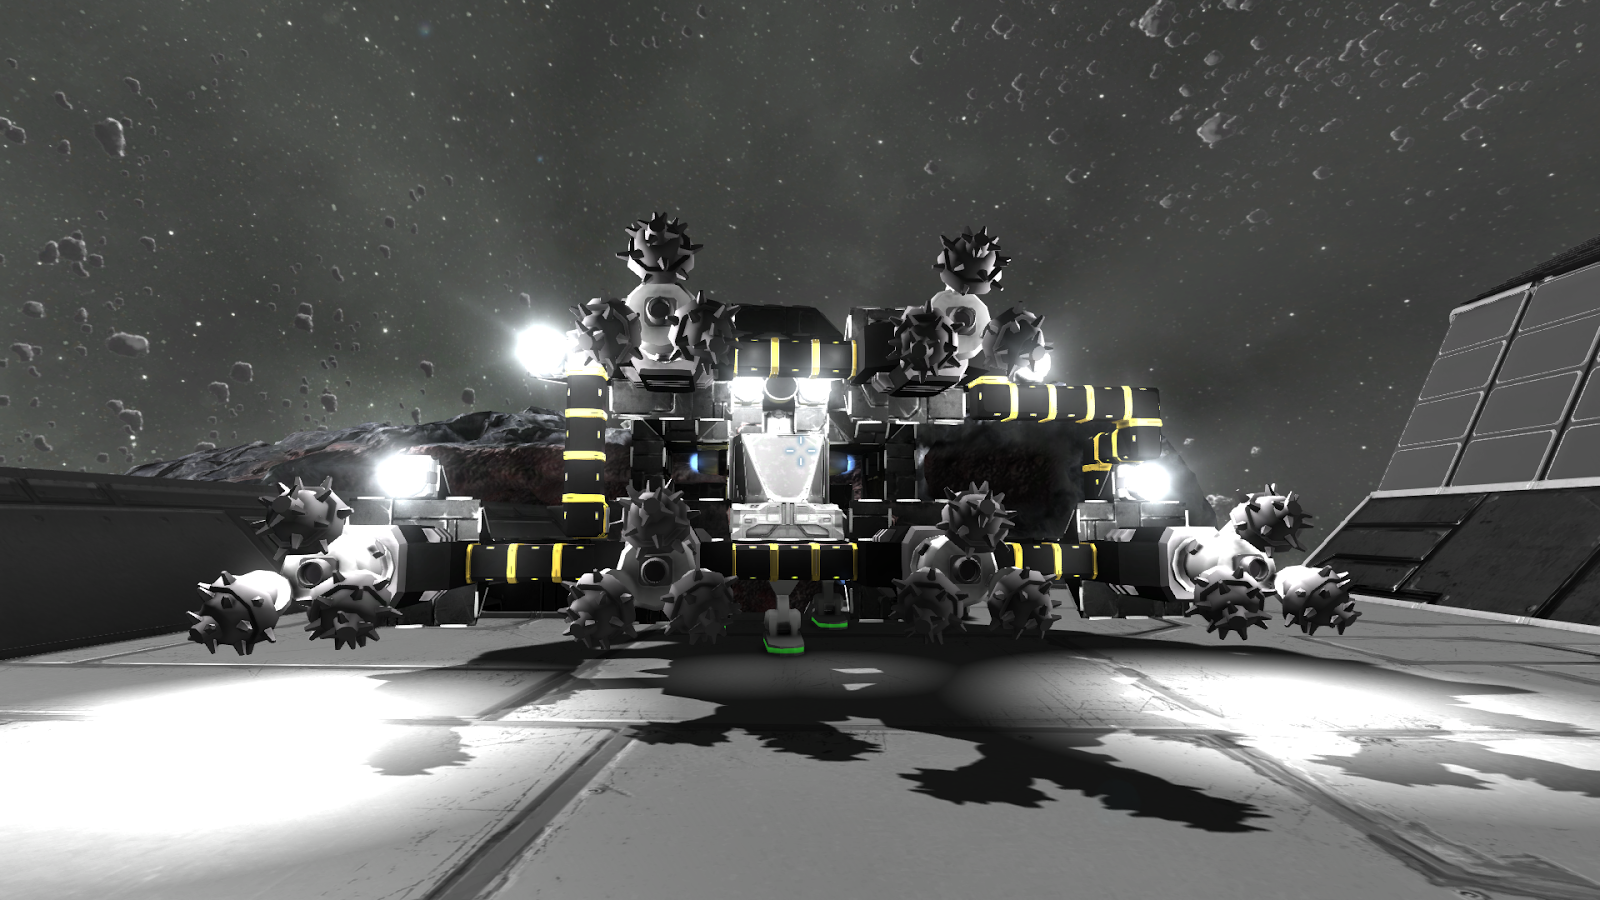 space engineers asteroid ship - photo #36